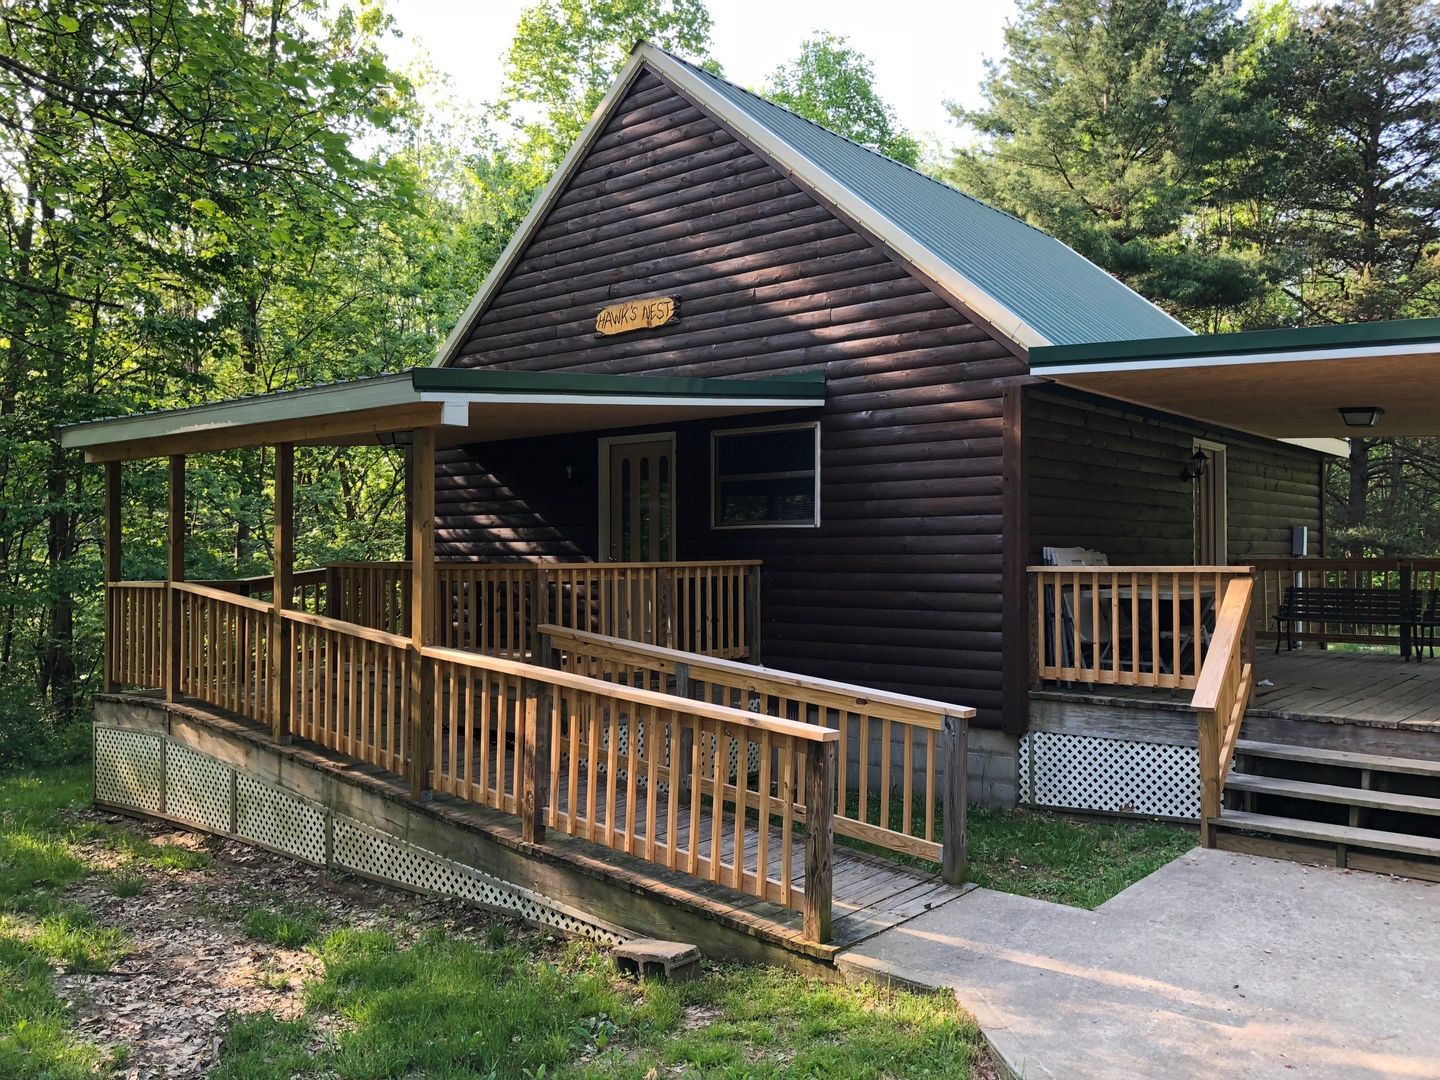 Hawk's Nest Cabin - Hocking Hills Cabin Rentals and Hocking Hills